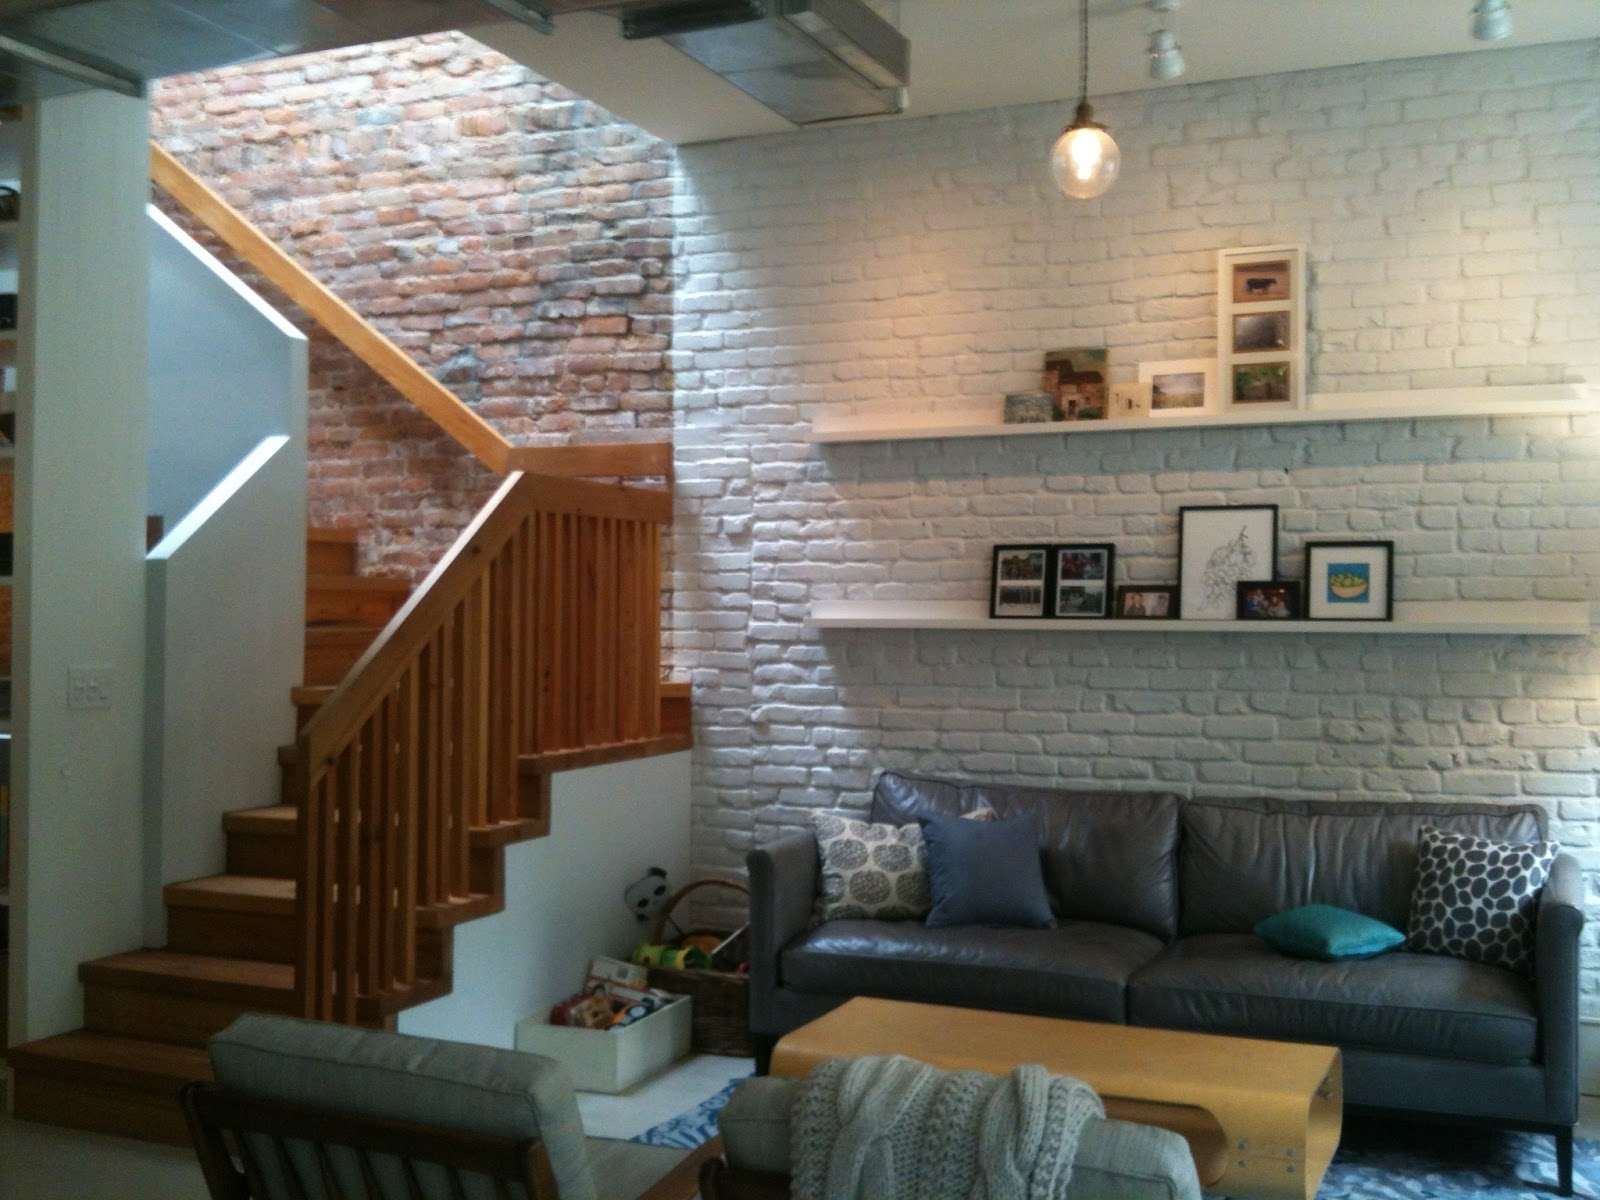 Trendy Exposed Brick Wall Accents With Fantastic Artwork Wall Decor Collection Hang On White Polished (Gallery 8 of 15)